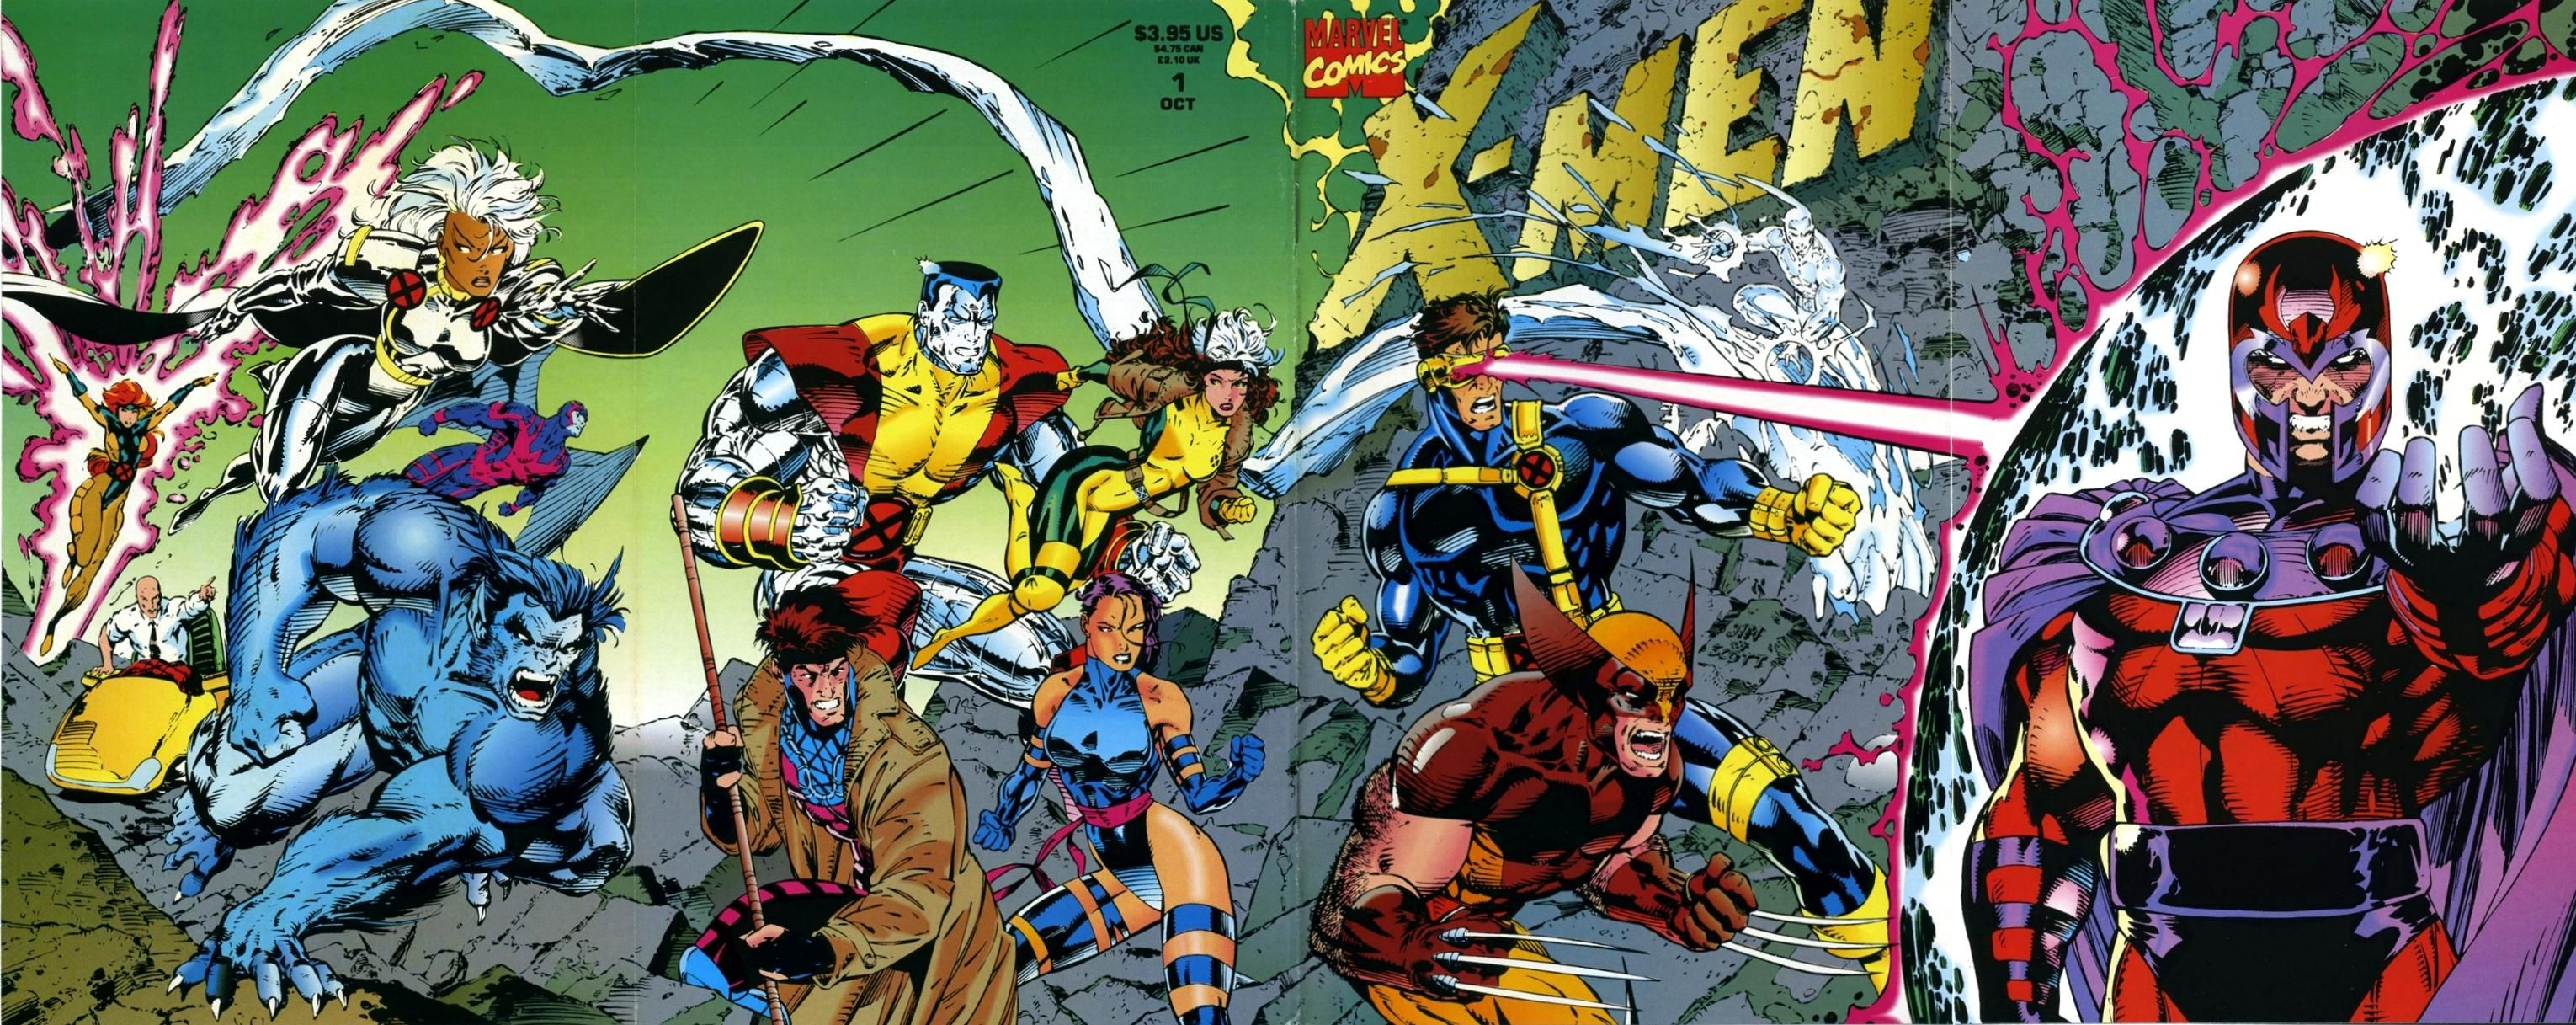 Jim Lee X Men Posters 1 Comic Book Covers Comic Book Superheroes Jim Lee